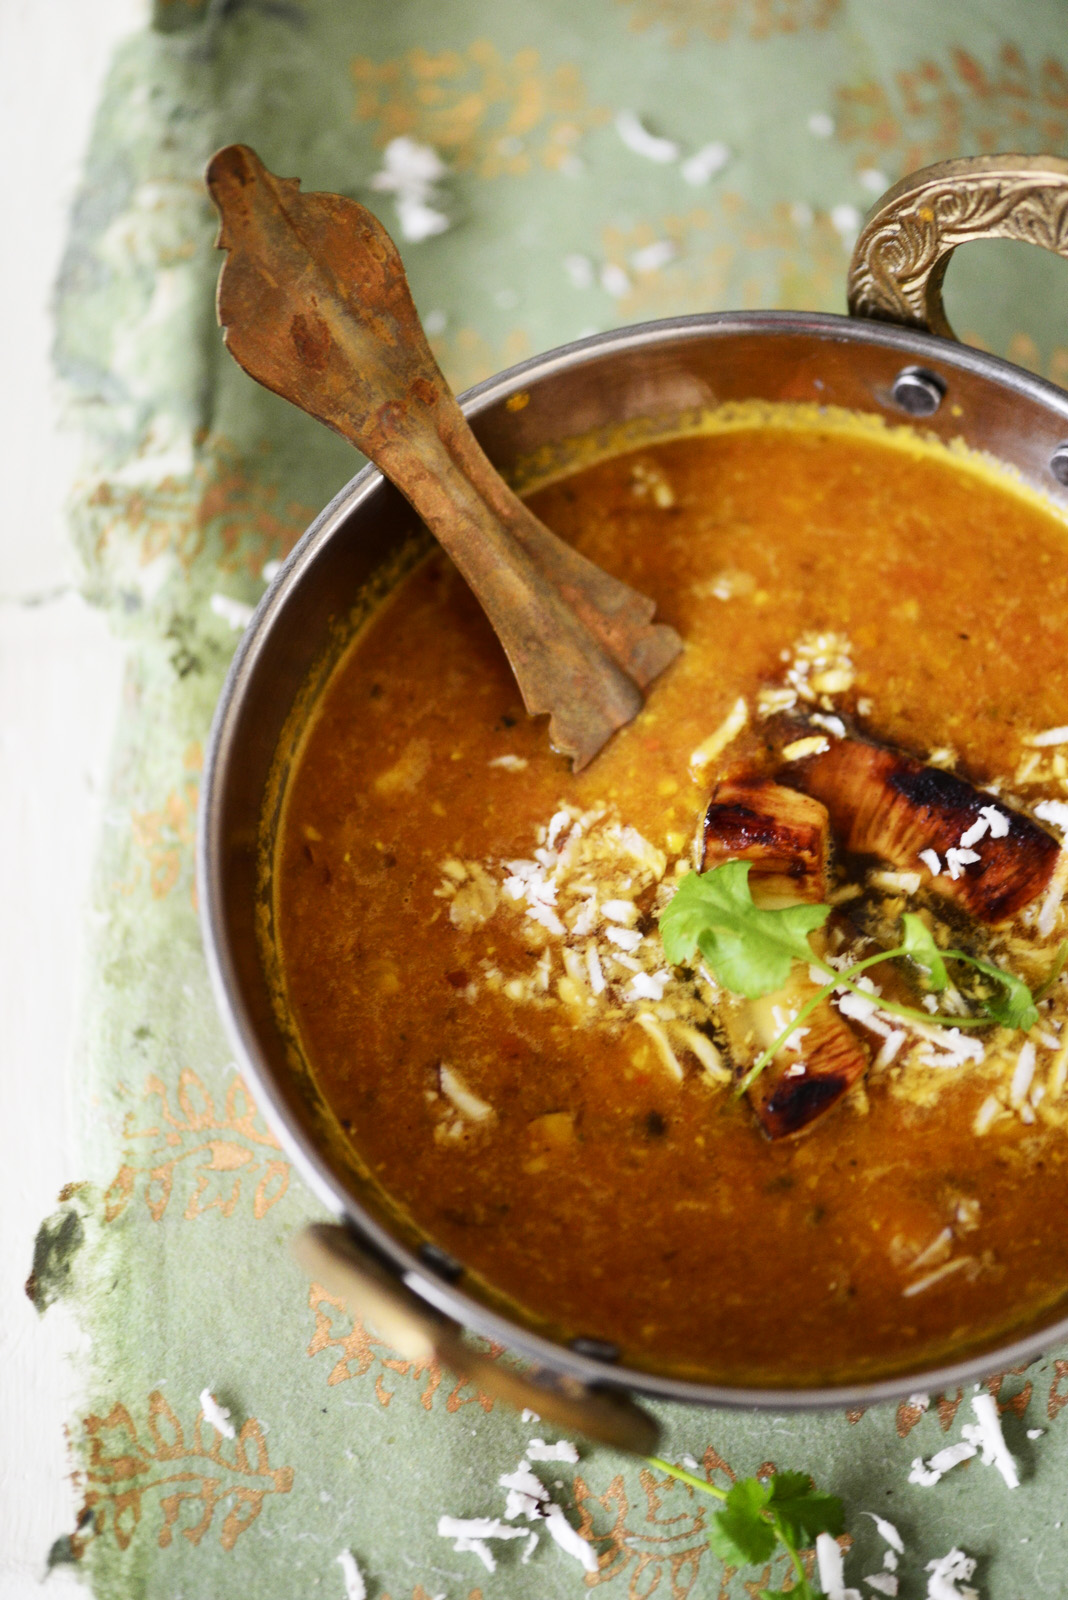 http://kirstenskaarup.dk/wp-content/uploads/2014/10/dhal.indisk-linsesuppe.jpg